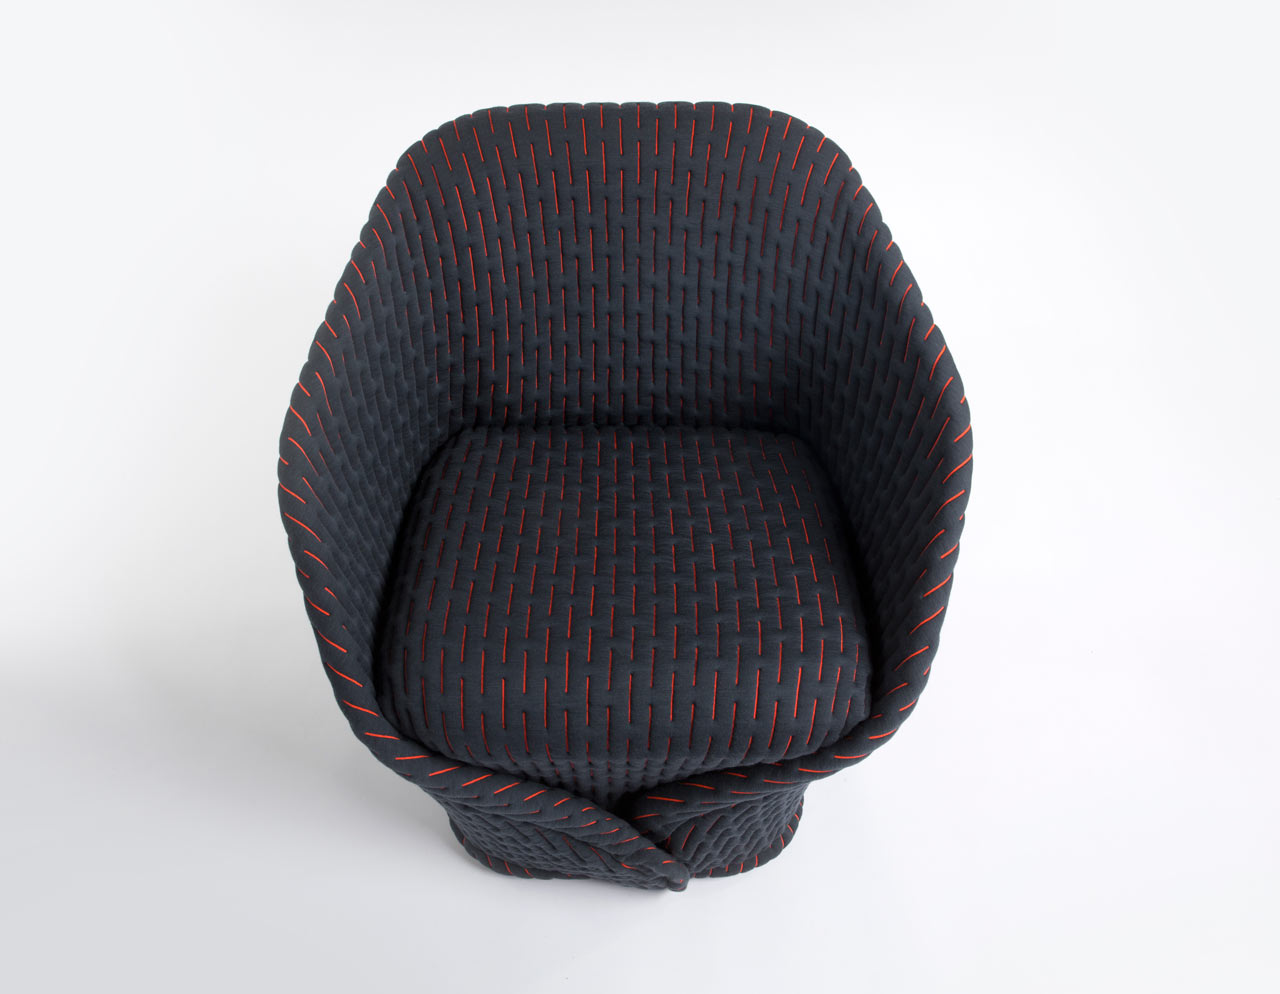 Talma-Chair-Moroso-Hubert-5